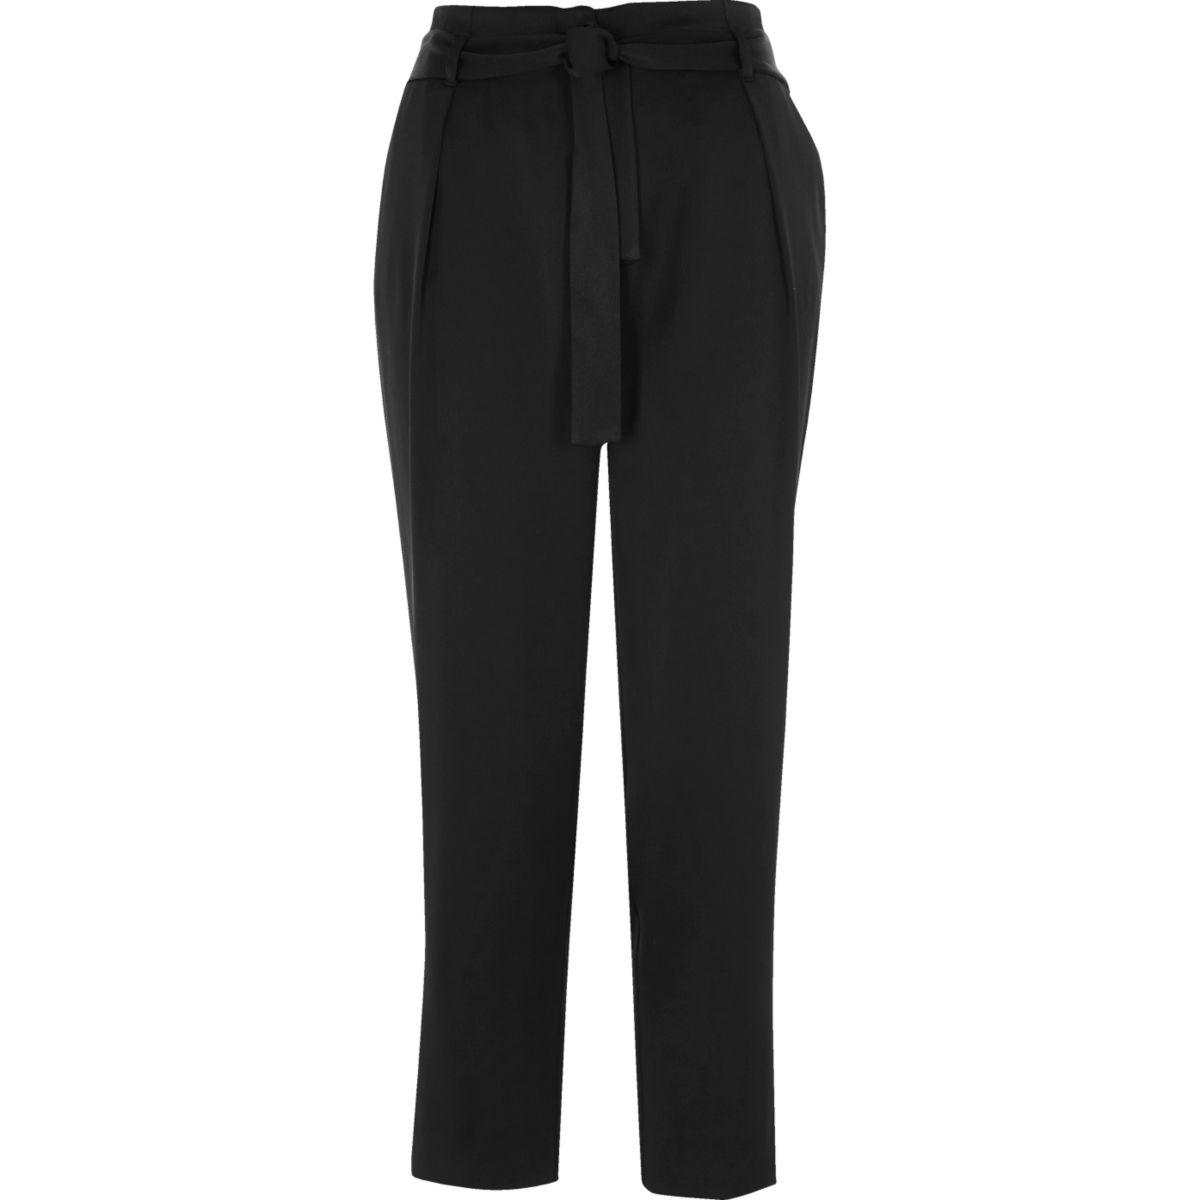 Black soft tie tapered trousers